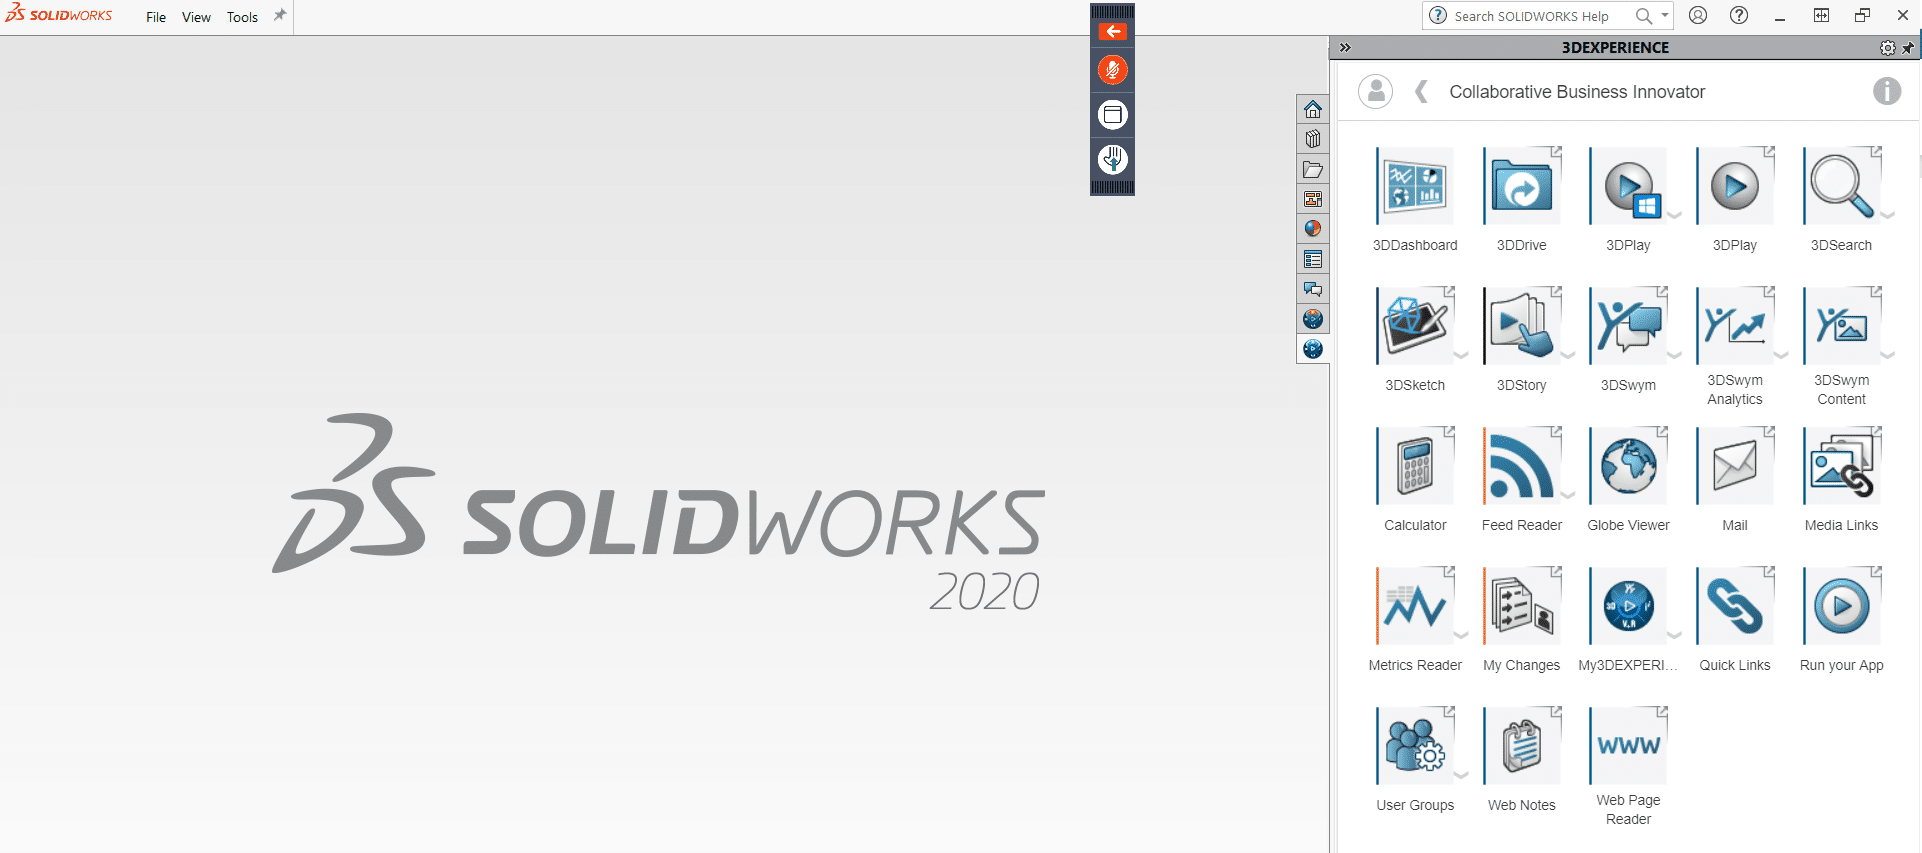 Collaborative Business Innovator in the SOLIDWORKS add-in